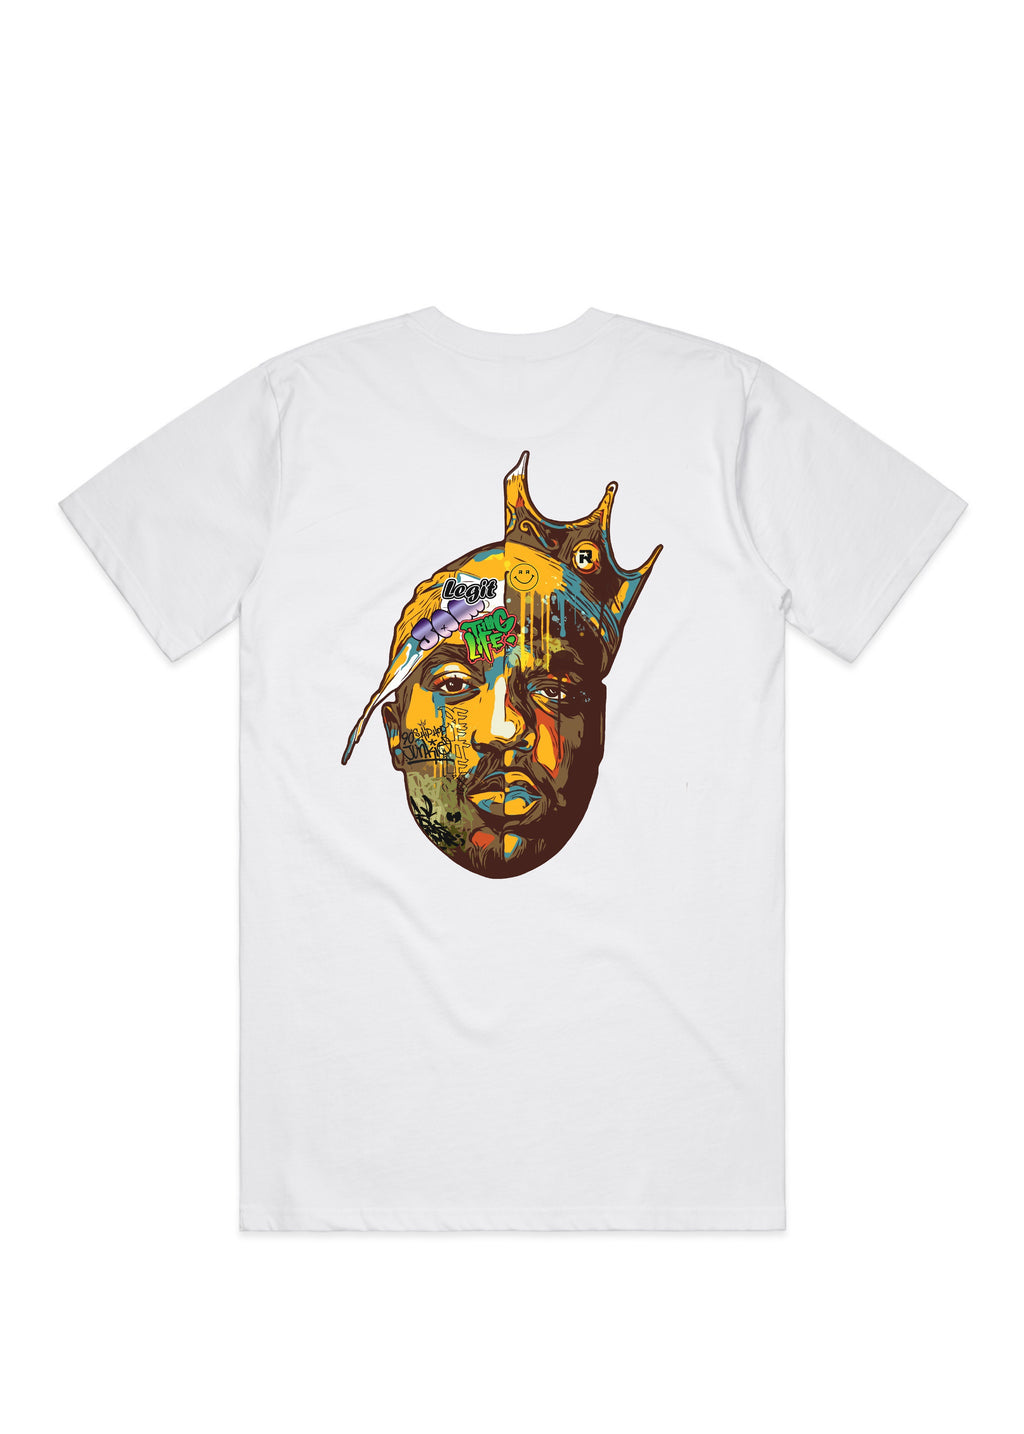 Two Kings white tee